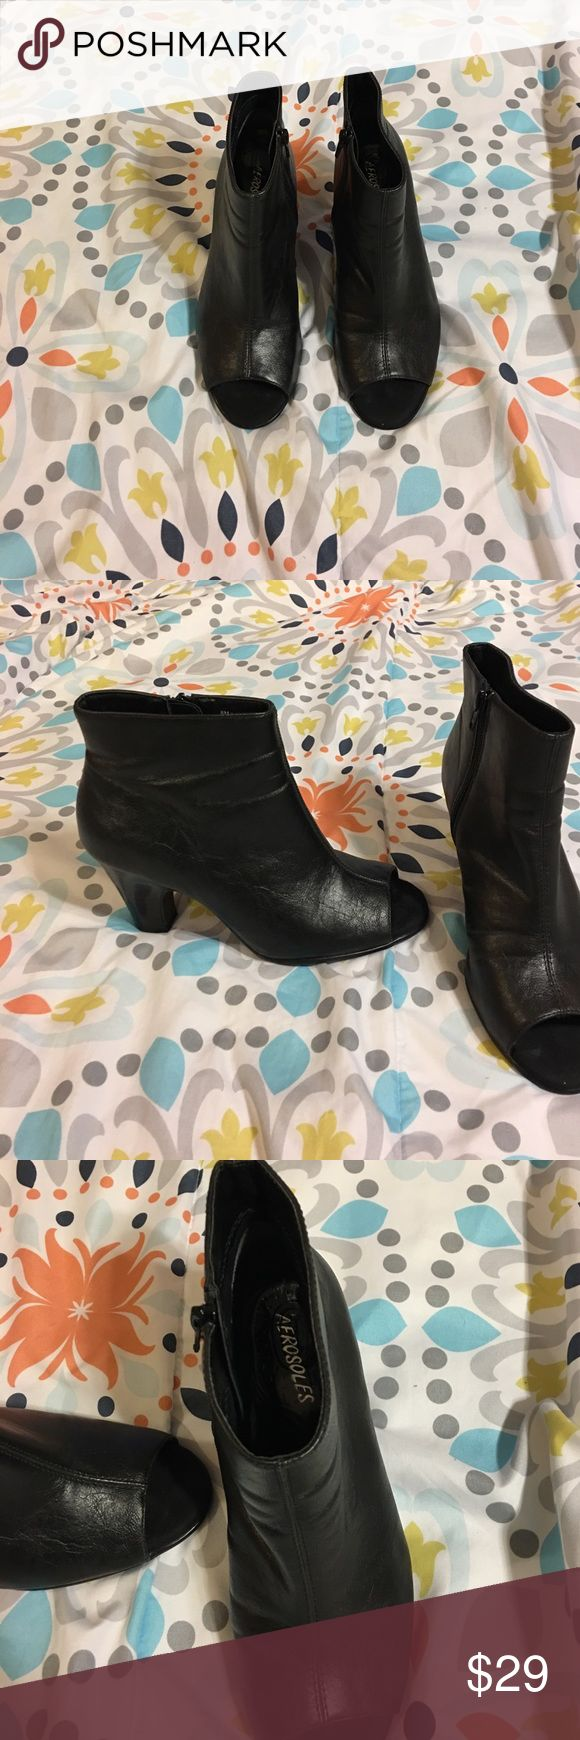 """Aerosoles black peep toe ankle boots Women's size 8m Aerosoles Disco booties, peep toe style. 3 1/2"""" heel, rubber sole to prevent slipping, no rubber tip on heel. In great condition with no scuffs or damage, some minimal wrinkling around ankle area and toe box where foot bends while walking. Comes from a smoke and pet free home. Shoe has a pedi perfect clear gel liner in it that was wiped down with Clorox wipes to clean. AEROSOLES Shoes Ankle Boots & Booties"""